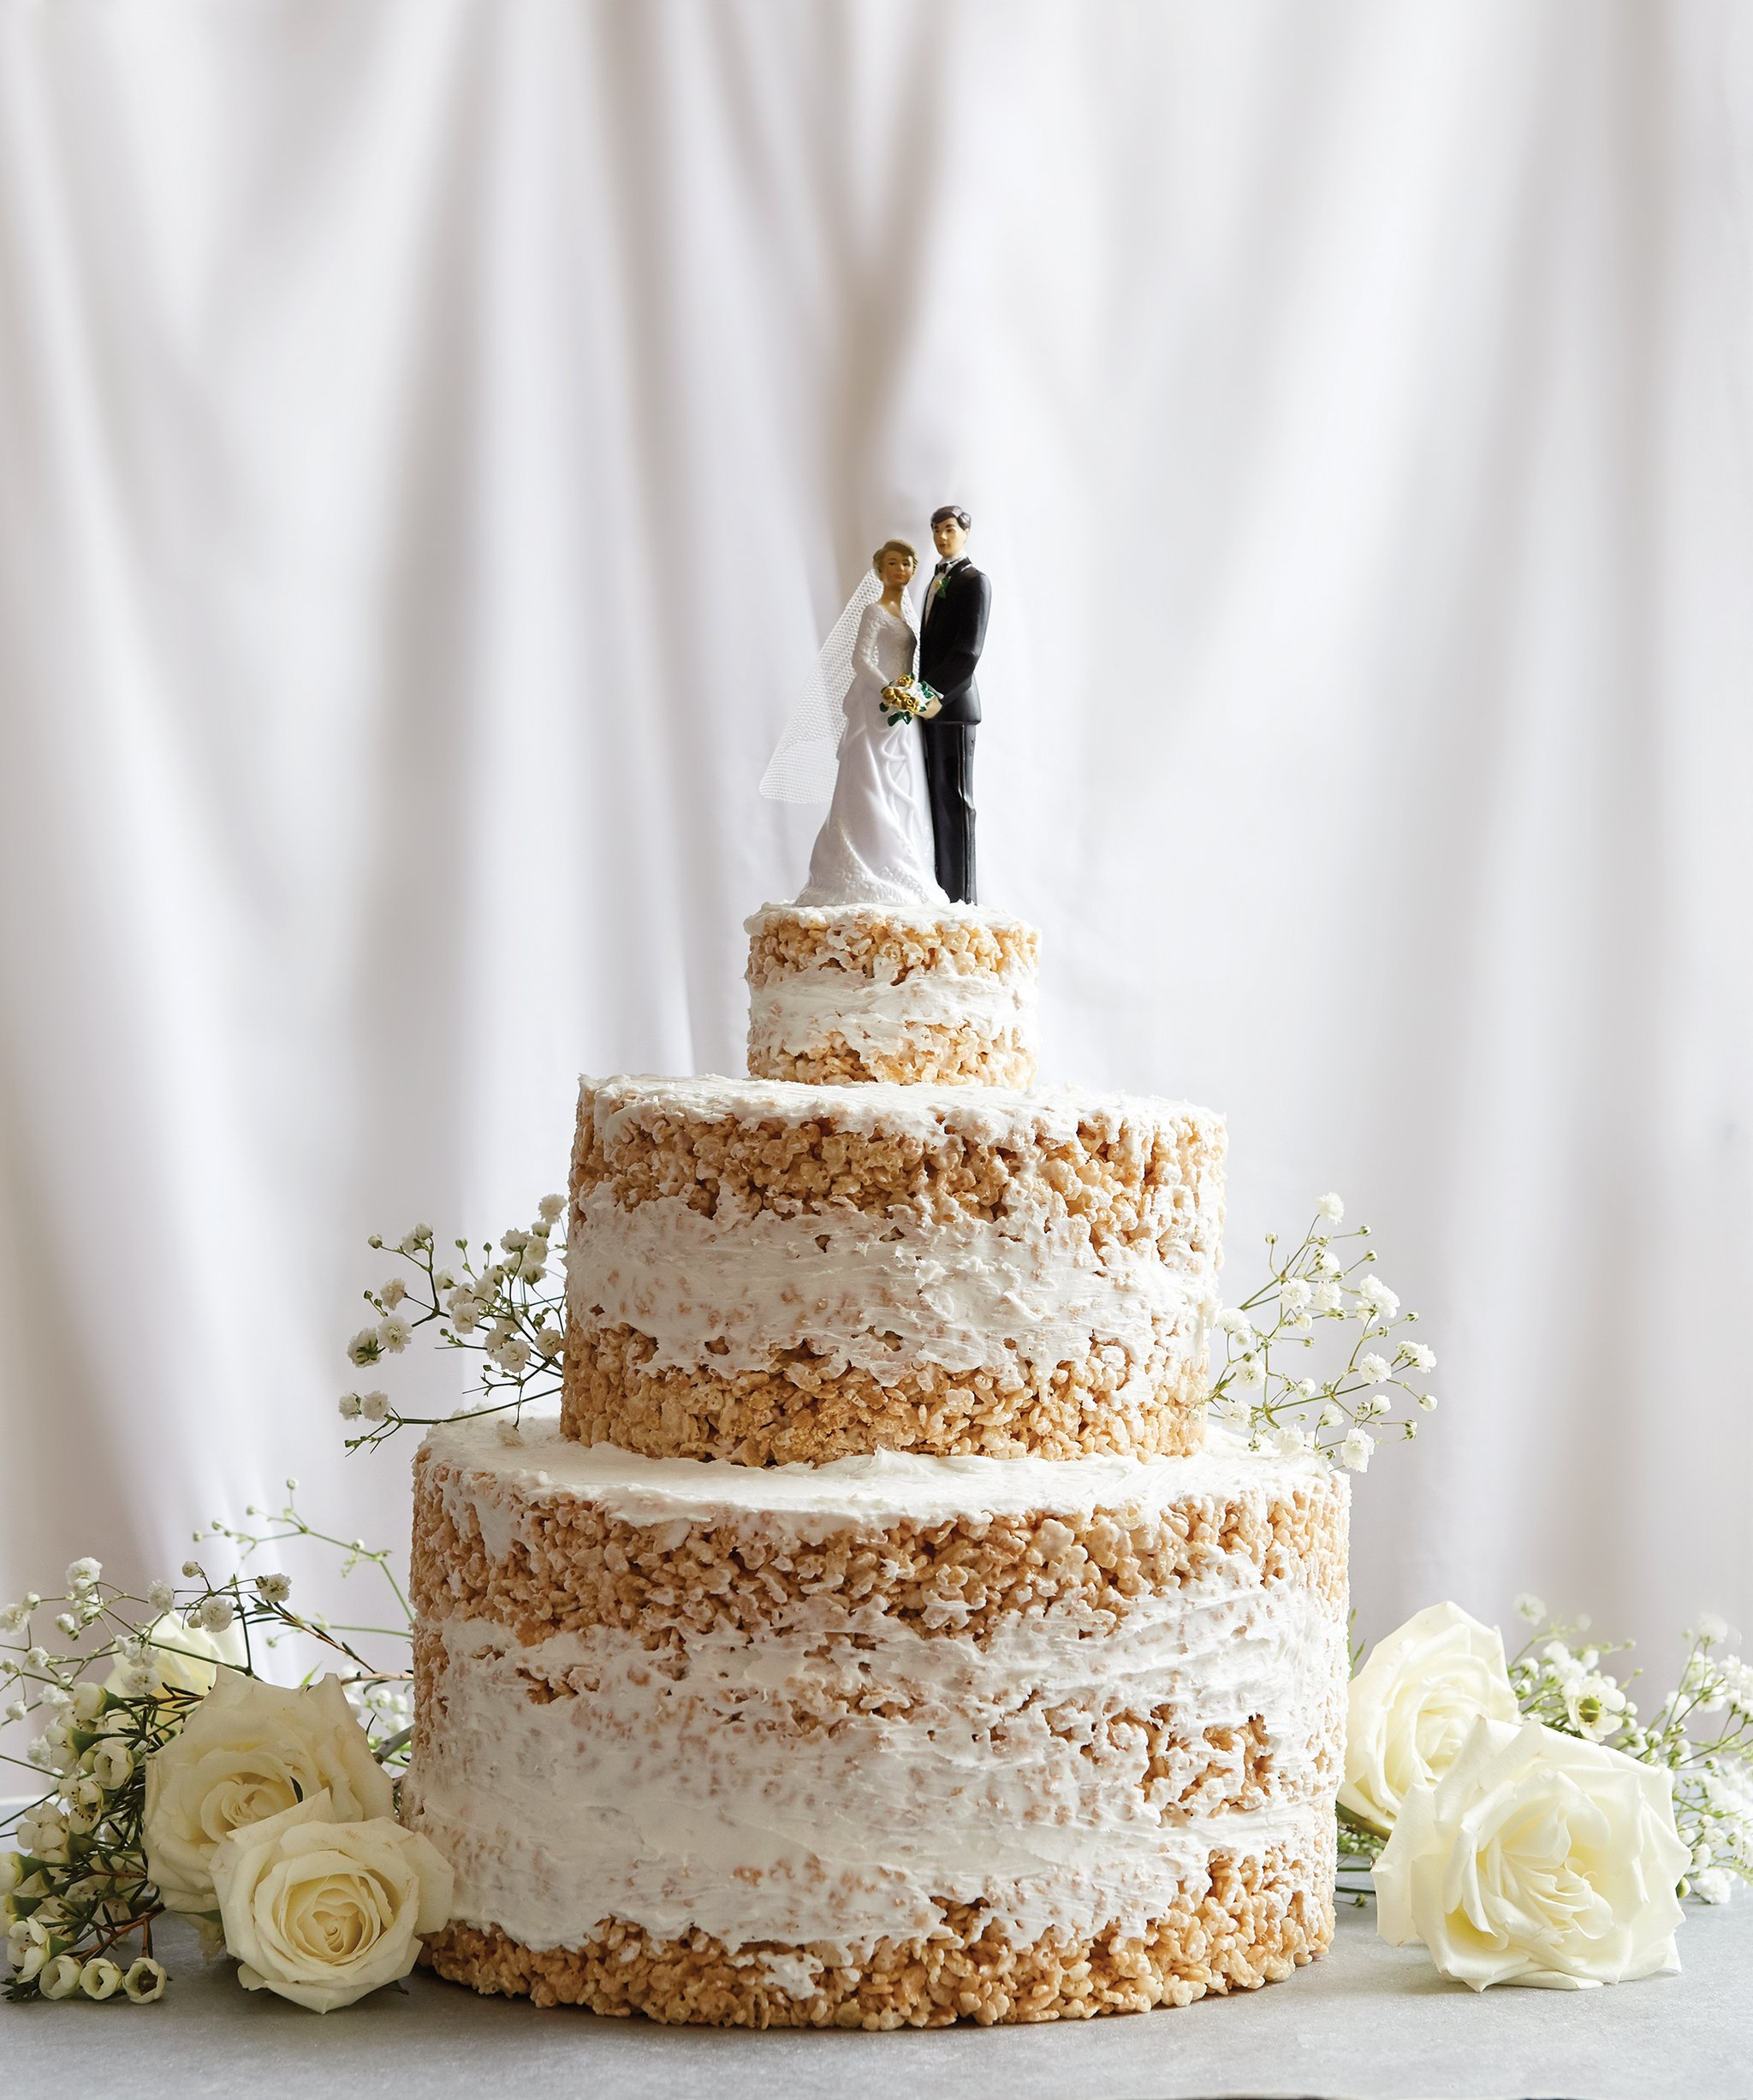 Free photo wedding cake wedding cakes free download jooinn wedding cake junglespirit Images